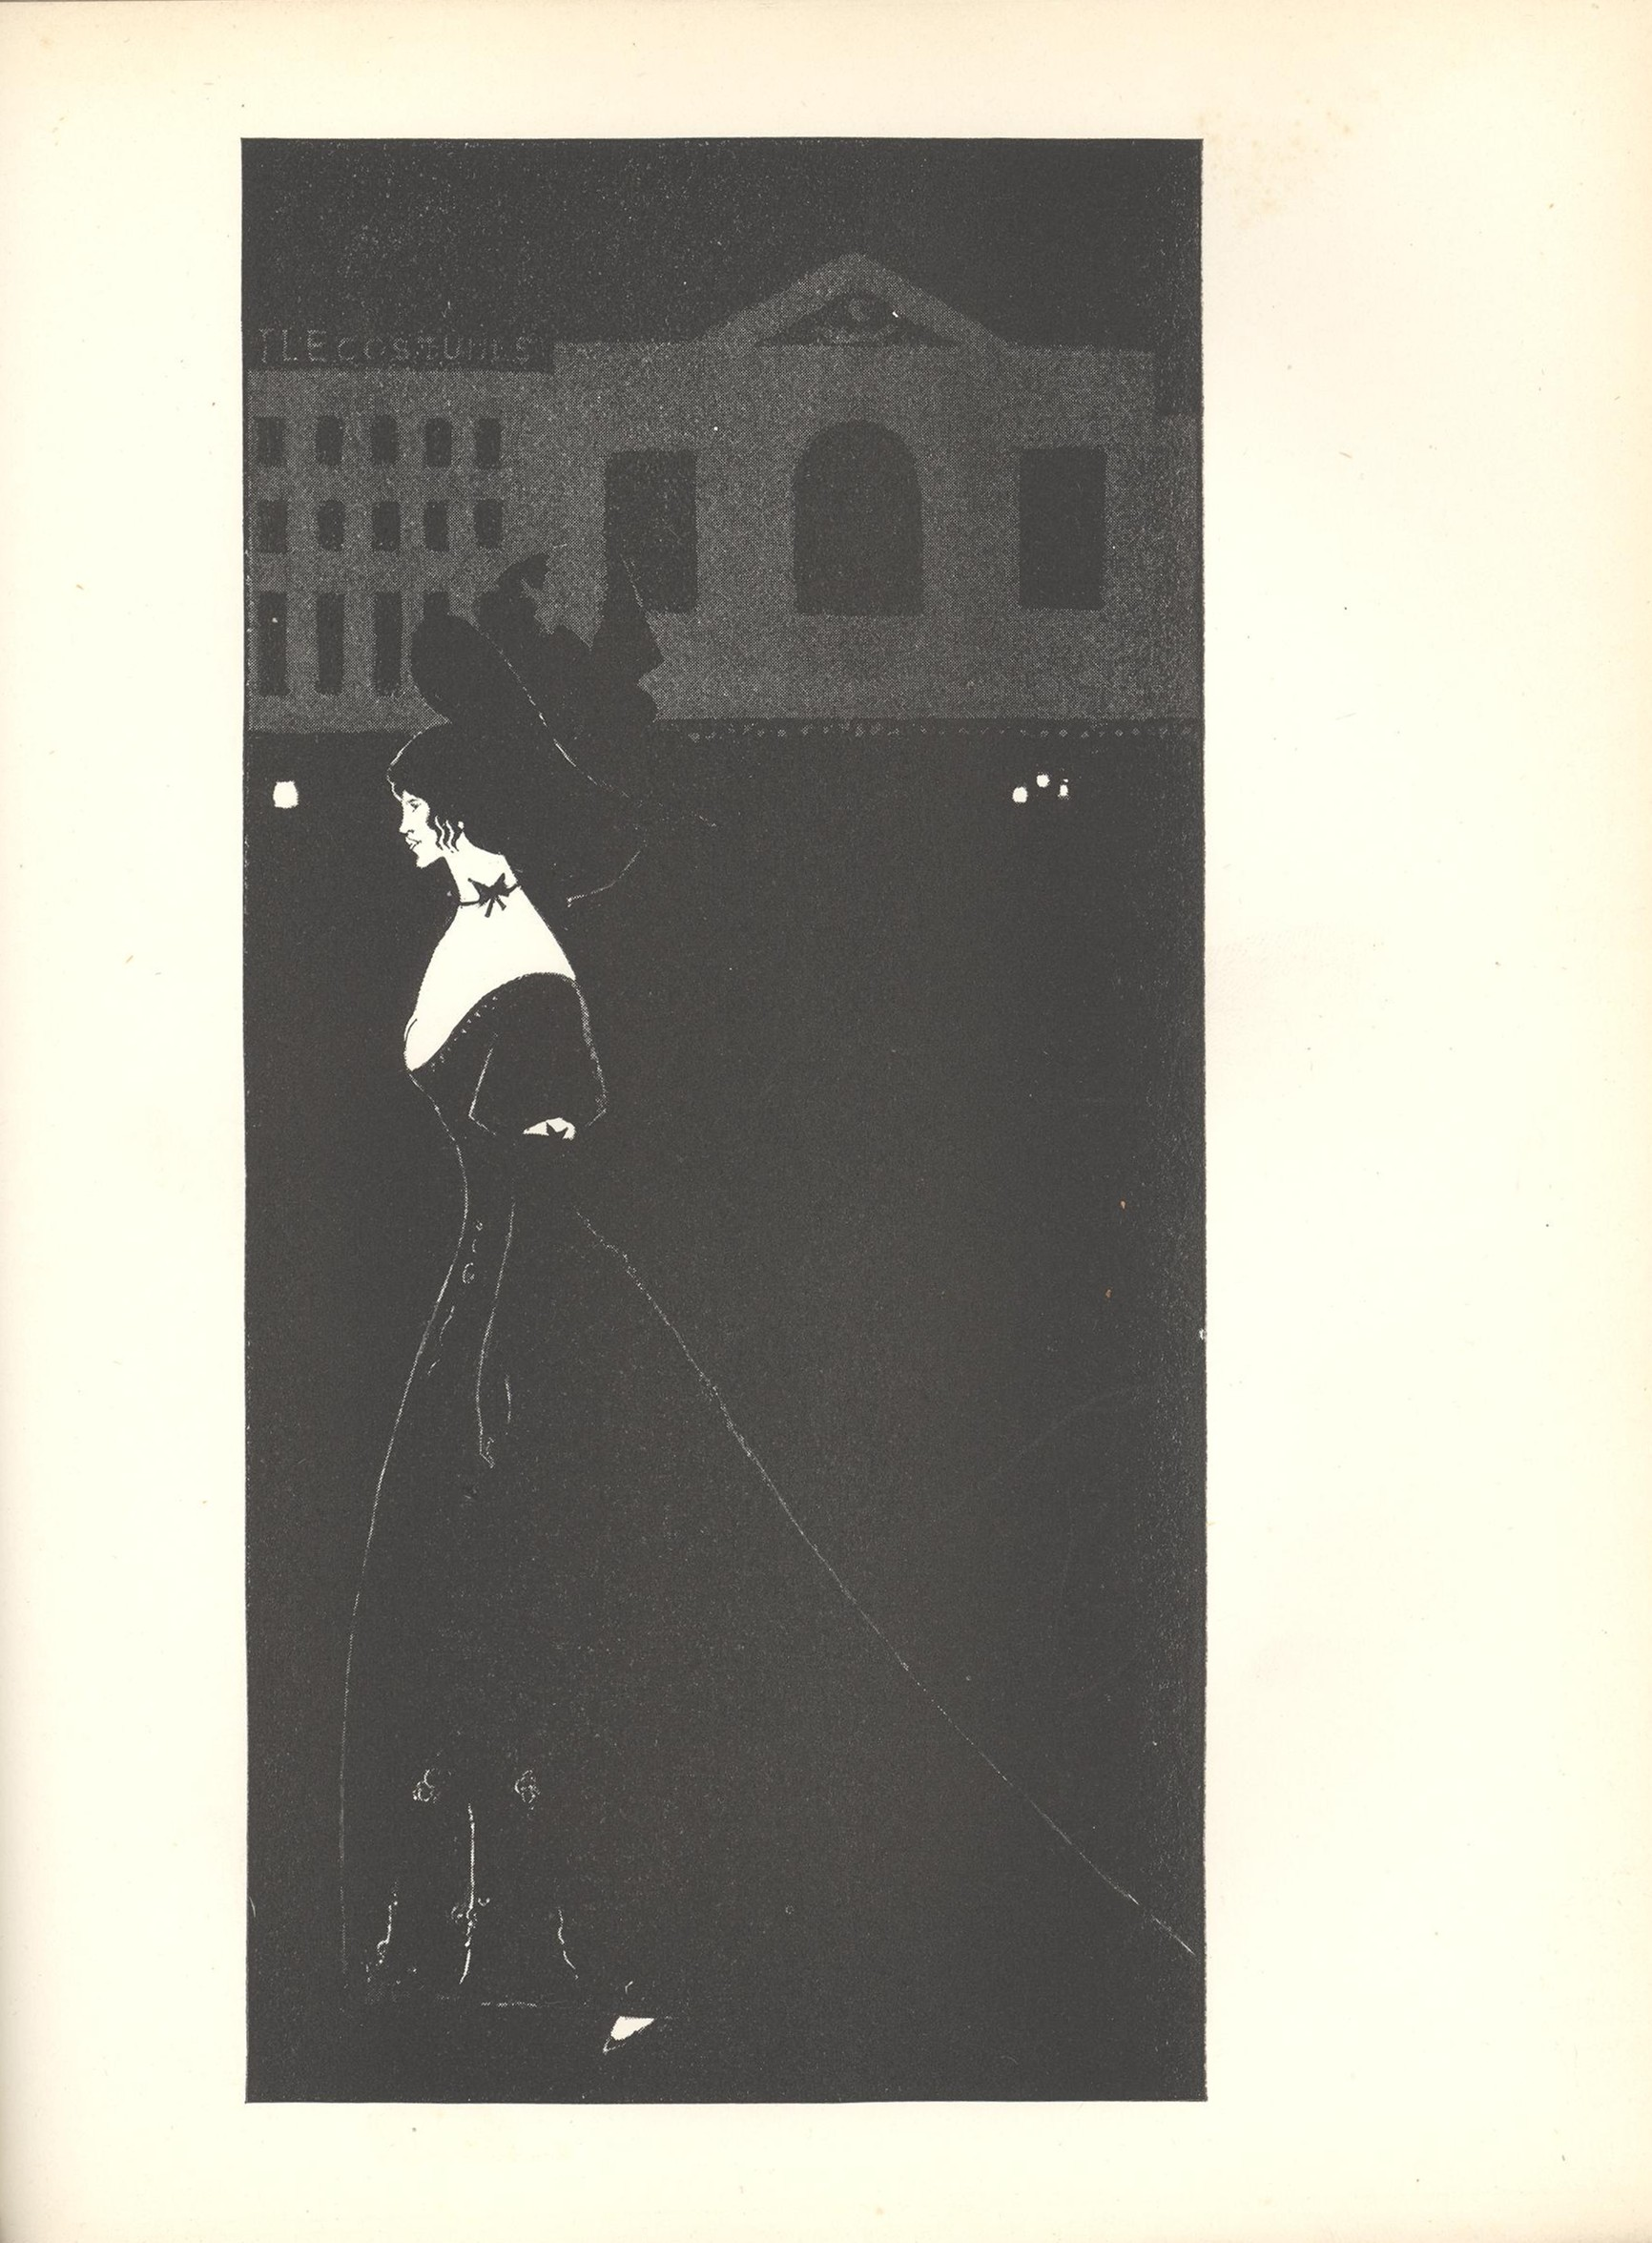 Image is of a night scene In extreme foreground a solitary full length woman is shown in profile wearing a black evening gown with a bow around her throat and her hair in a coif walking toward the left corner In the background of the upper section there is the suggestion of an architectural façade and lights This façade has three large windows in a row on the right side and fifteen smaller windows in rows of five on the left side There is an attached sign that reads Costumes The image is displayed vertically